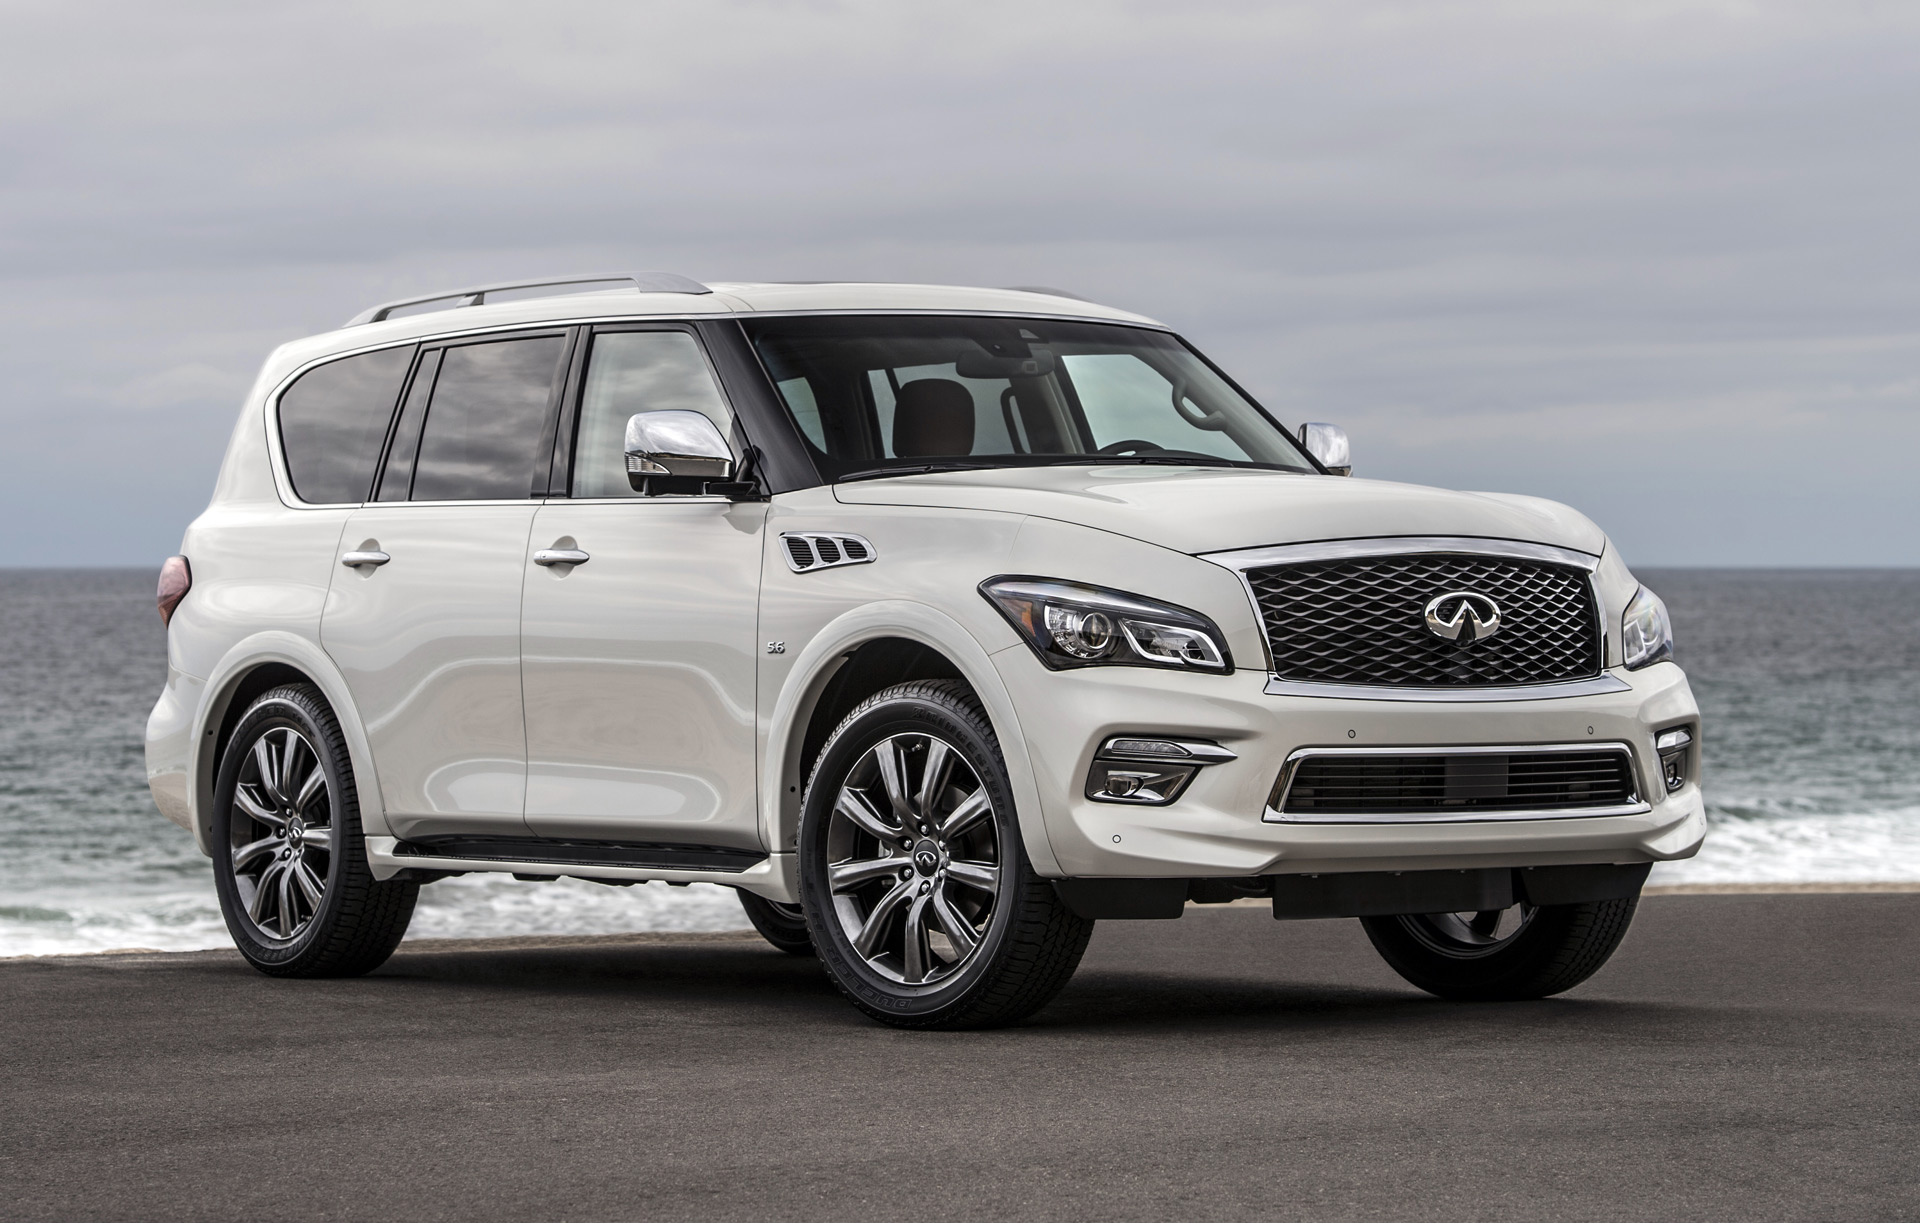 Bmw Of Fresno >> 2017 INFINITI QX80 Safety Review and Crash Test Ratings - The Car Connection